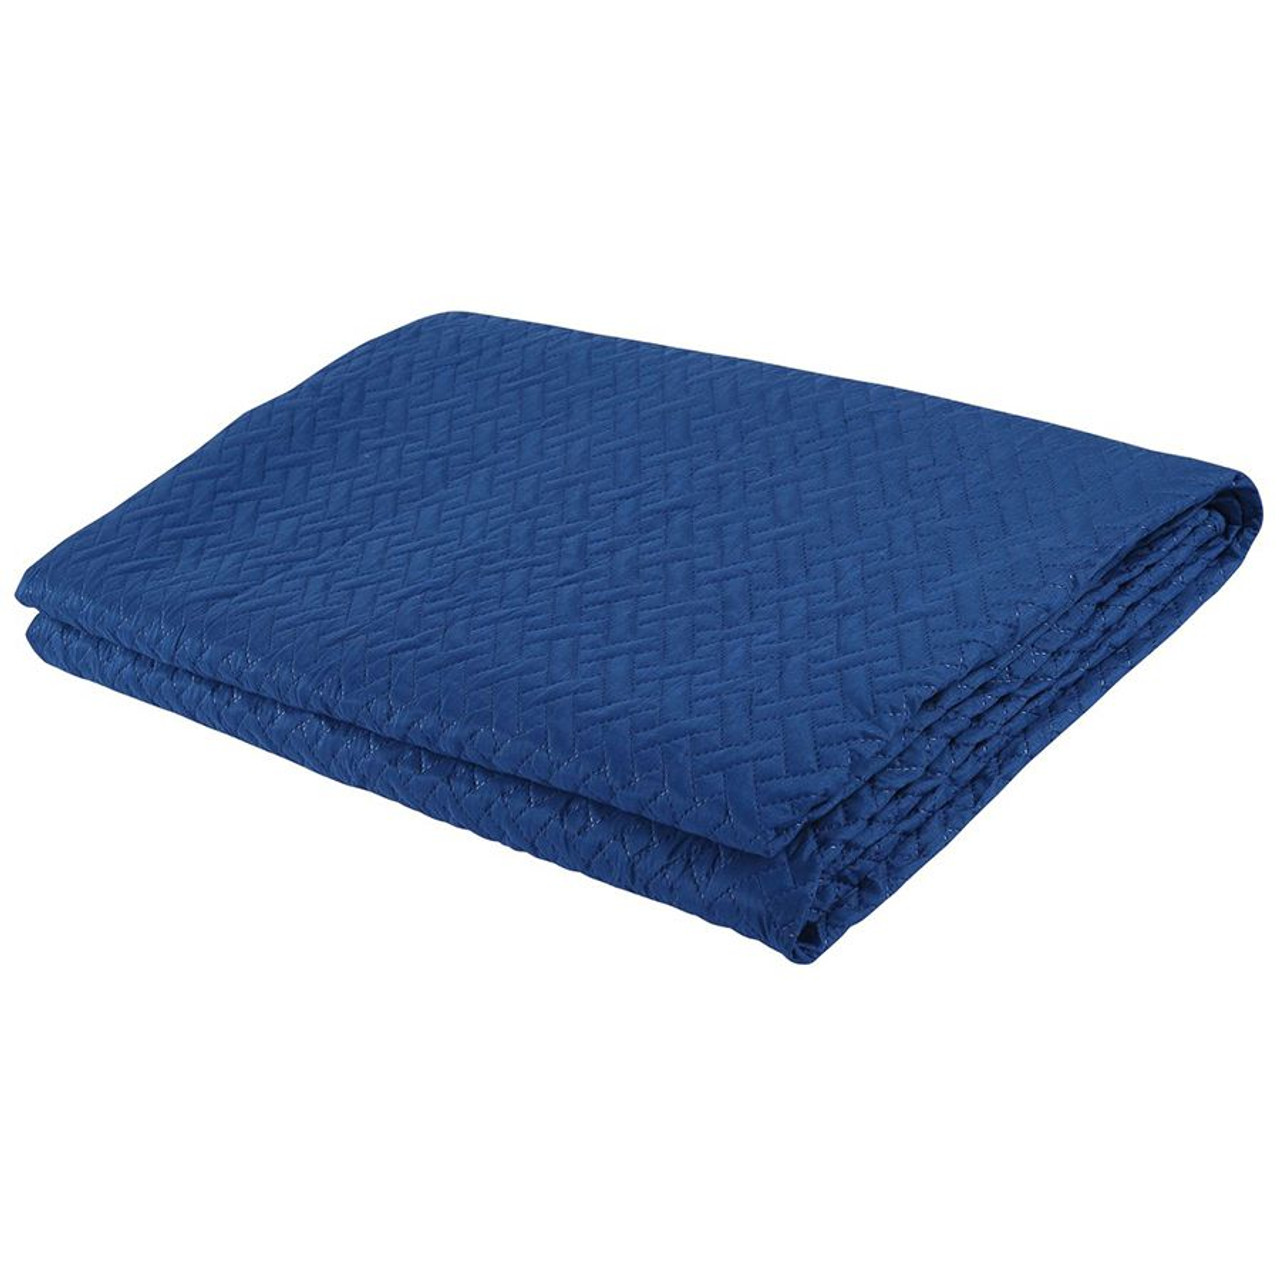 3 PCS Squared Stitched Pinsonic Reversible Oversized Bedspread Navy Color